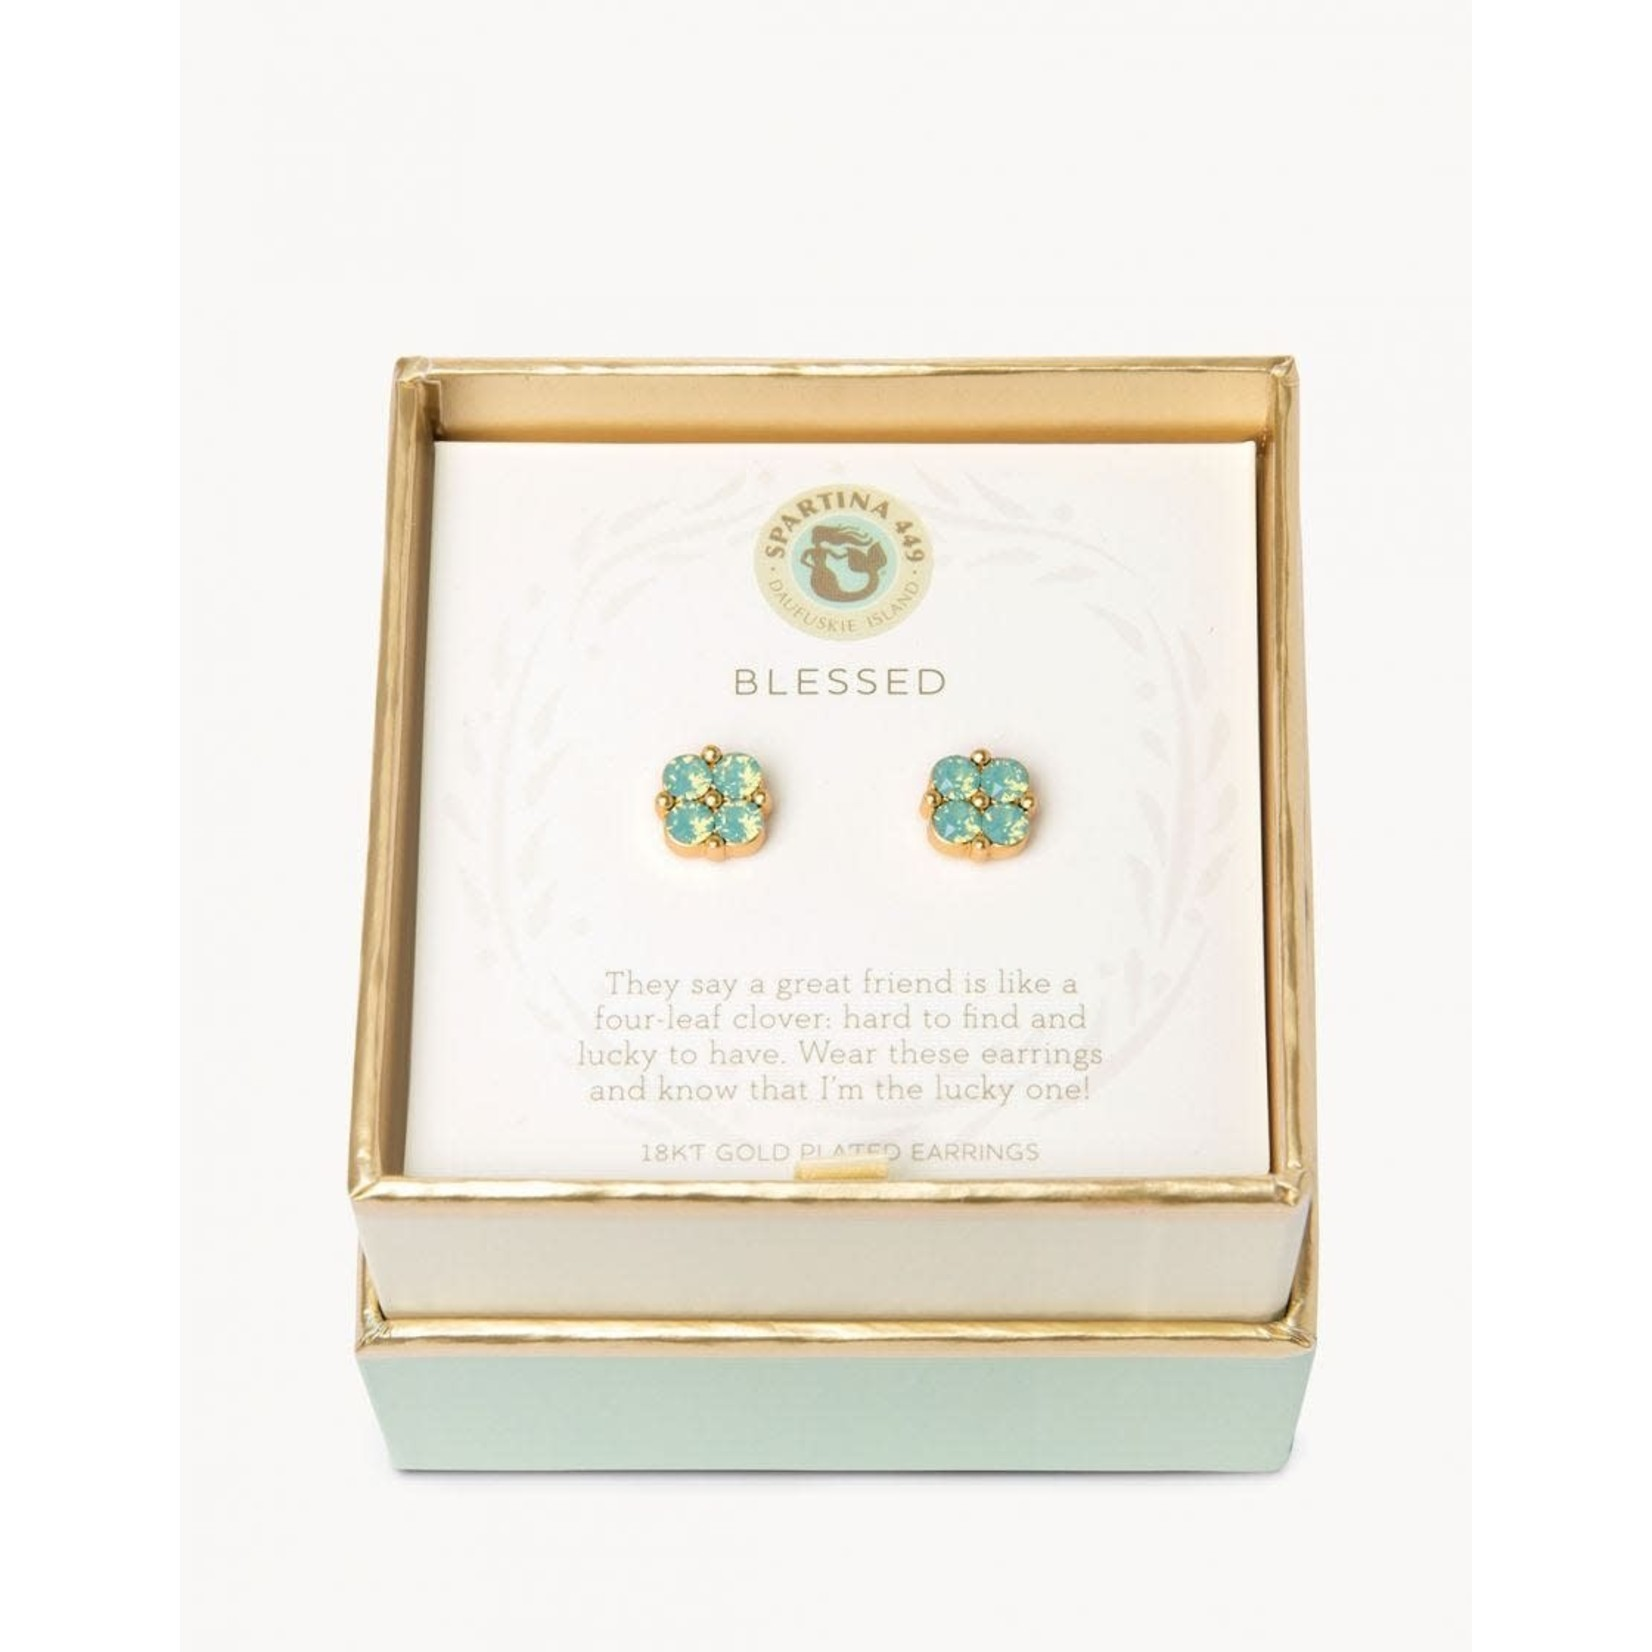 Spartina Earrings/Blessed Seafoam Clover Studs Gold/SLV